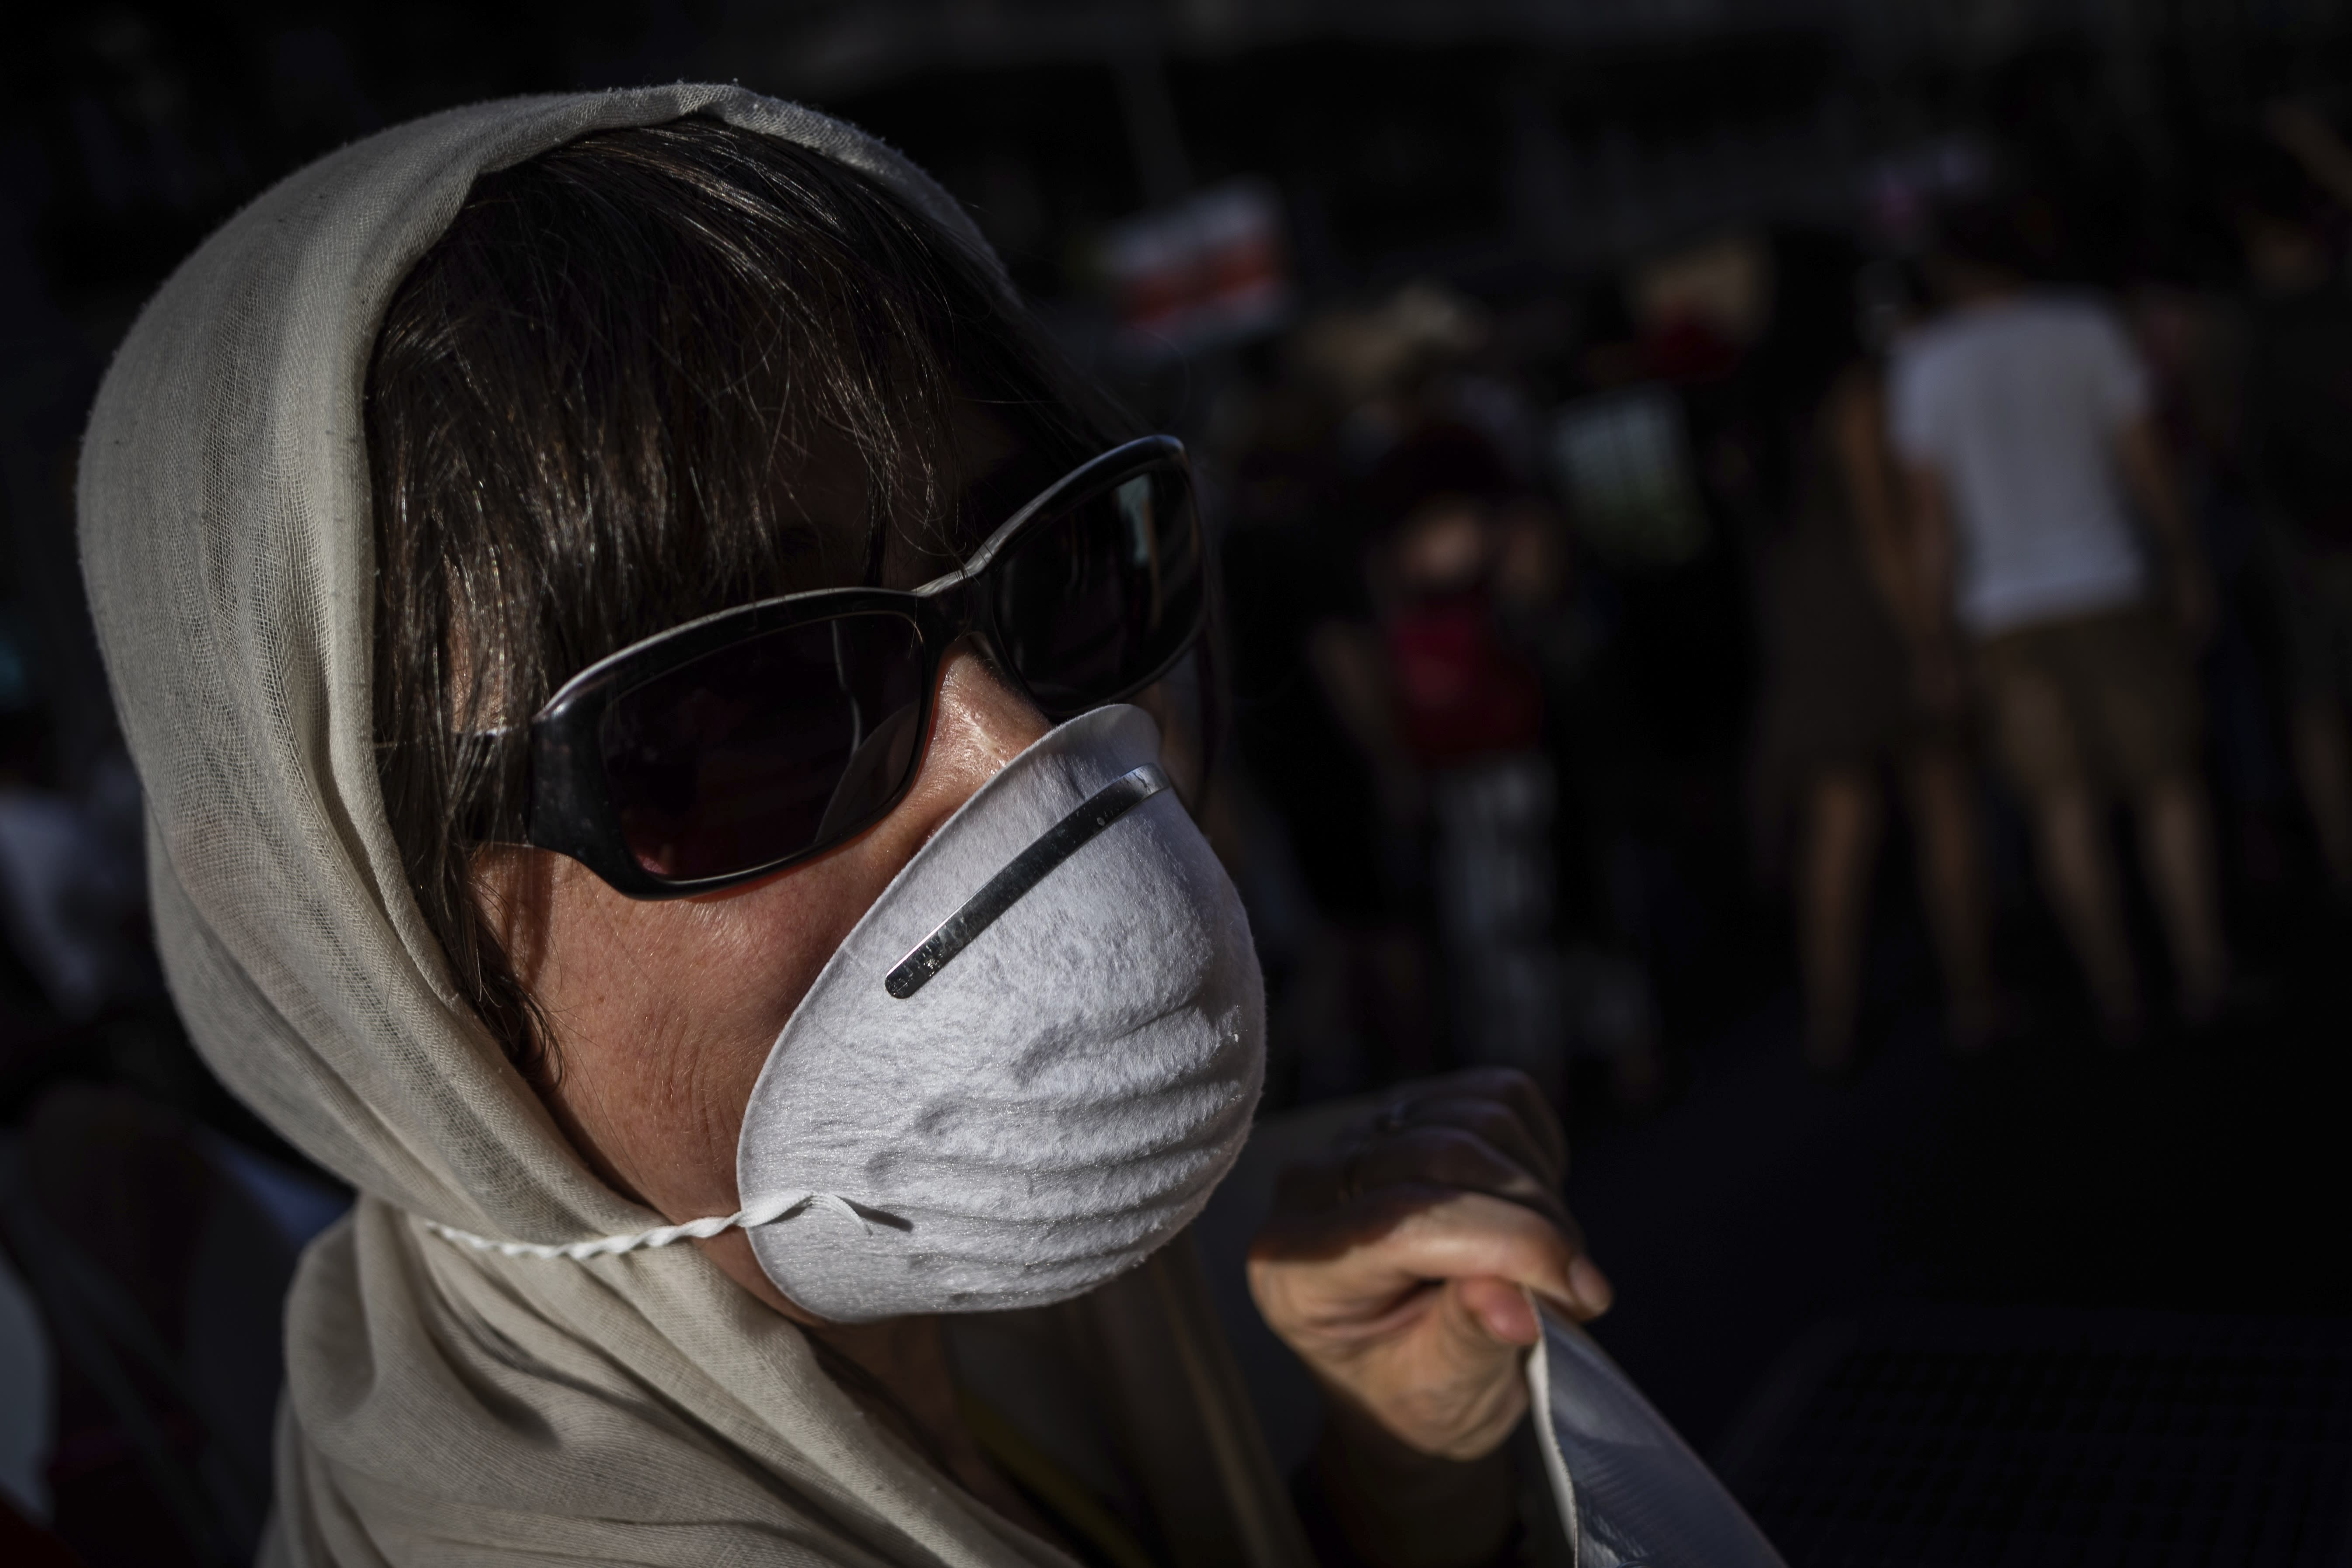 A citizen wears a mask during a rally in favor of a low-emission zone policy and against the new city council in Madrid, Spain, Saturday, June 29, 2019. The new municipality has decided to overturn ¨Madrid Central¨, an environment policy that banned most diesel and petrol cars within Madrid's downtown. The banner reads in Spanish ¨Less cars, better air¨. (AP Photo/Bernat Armangue)